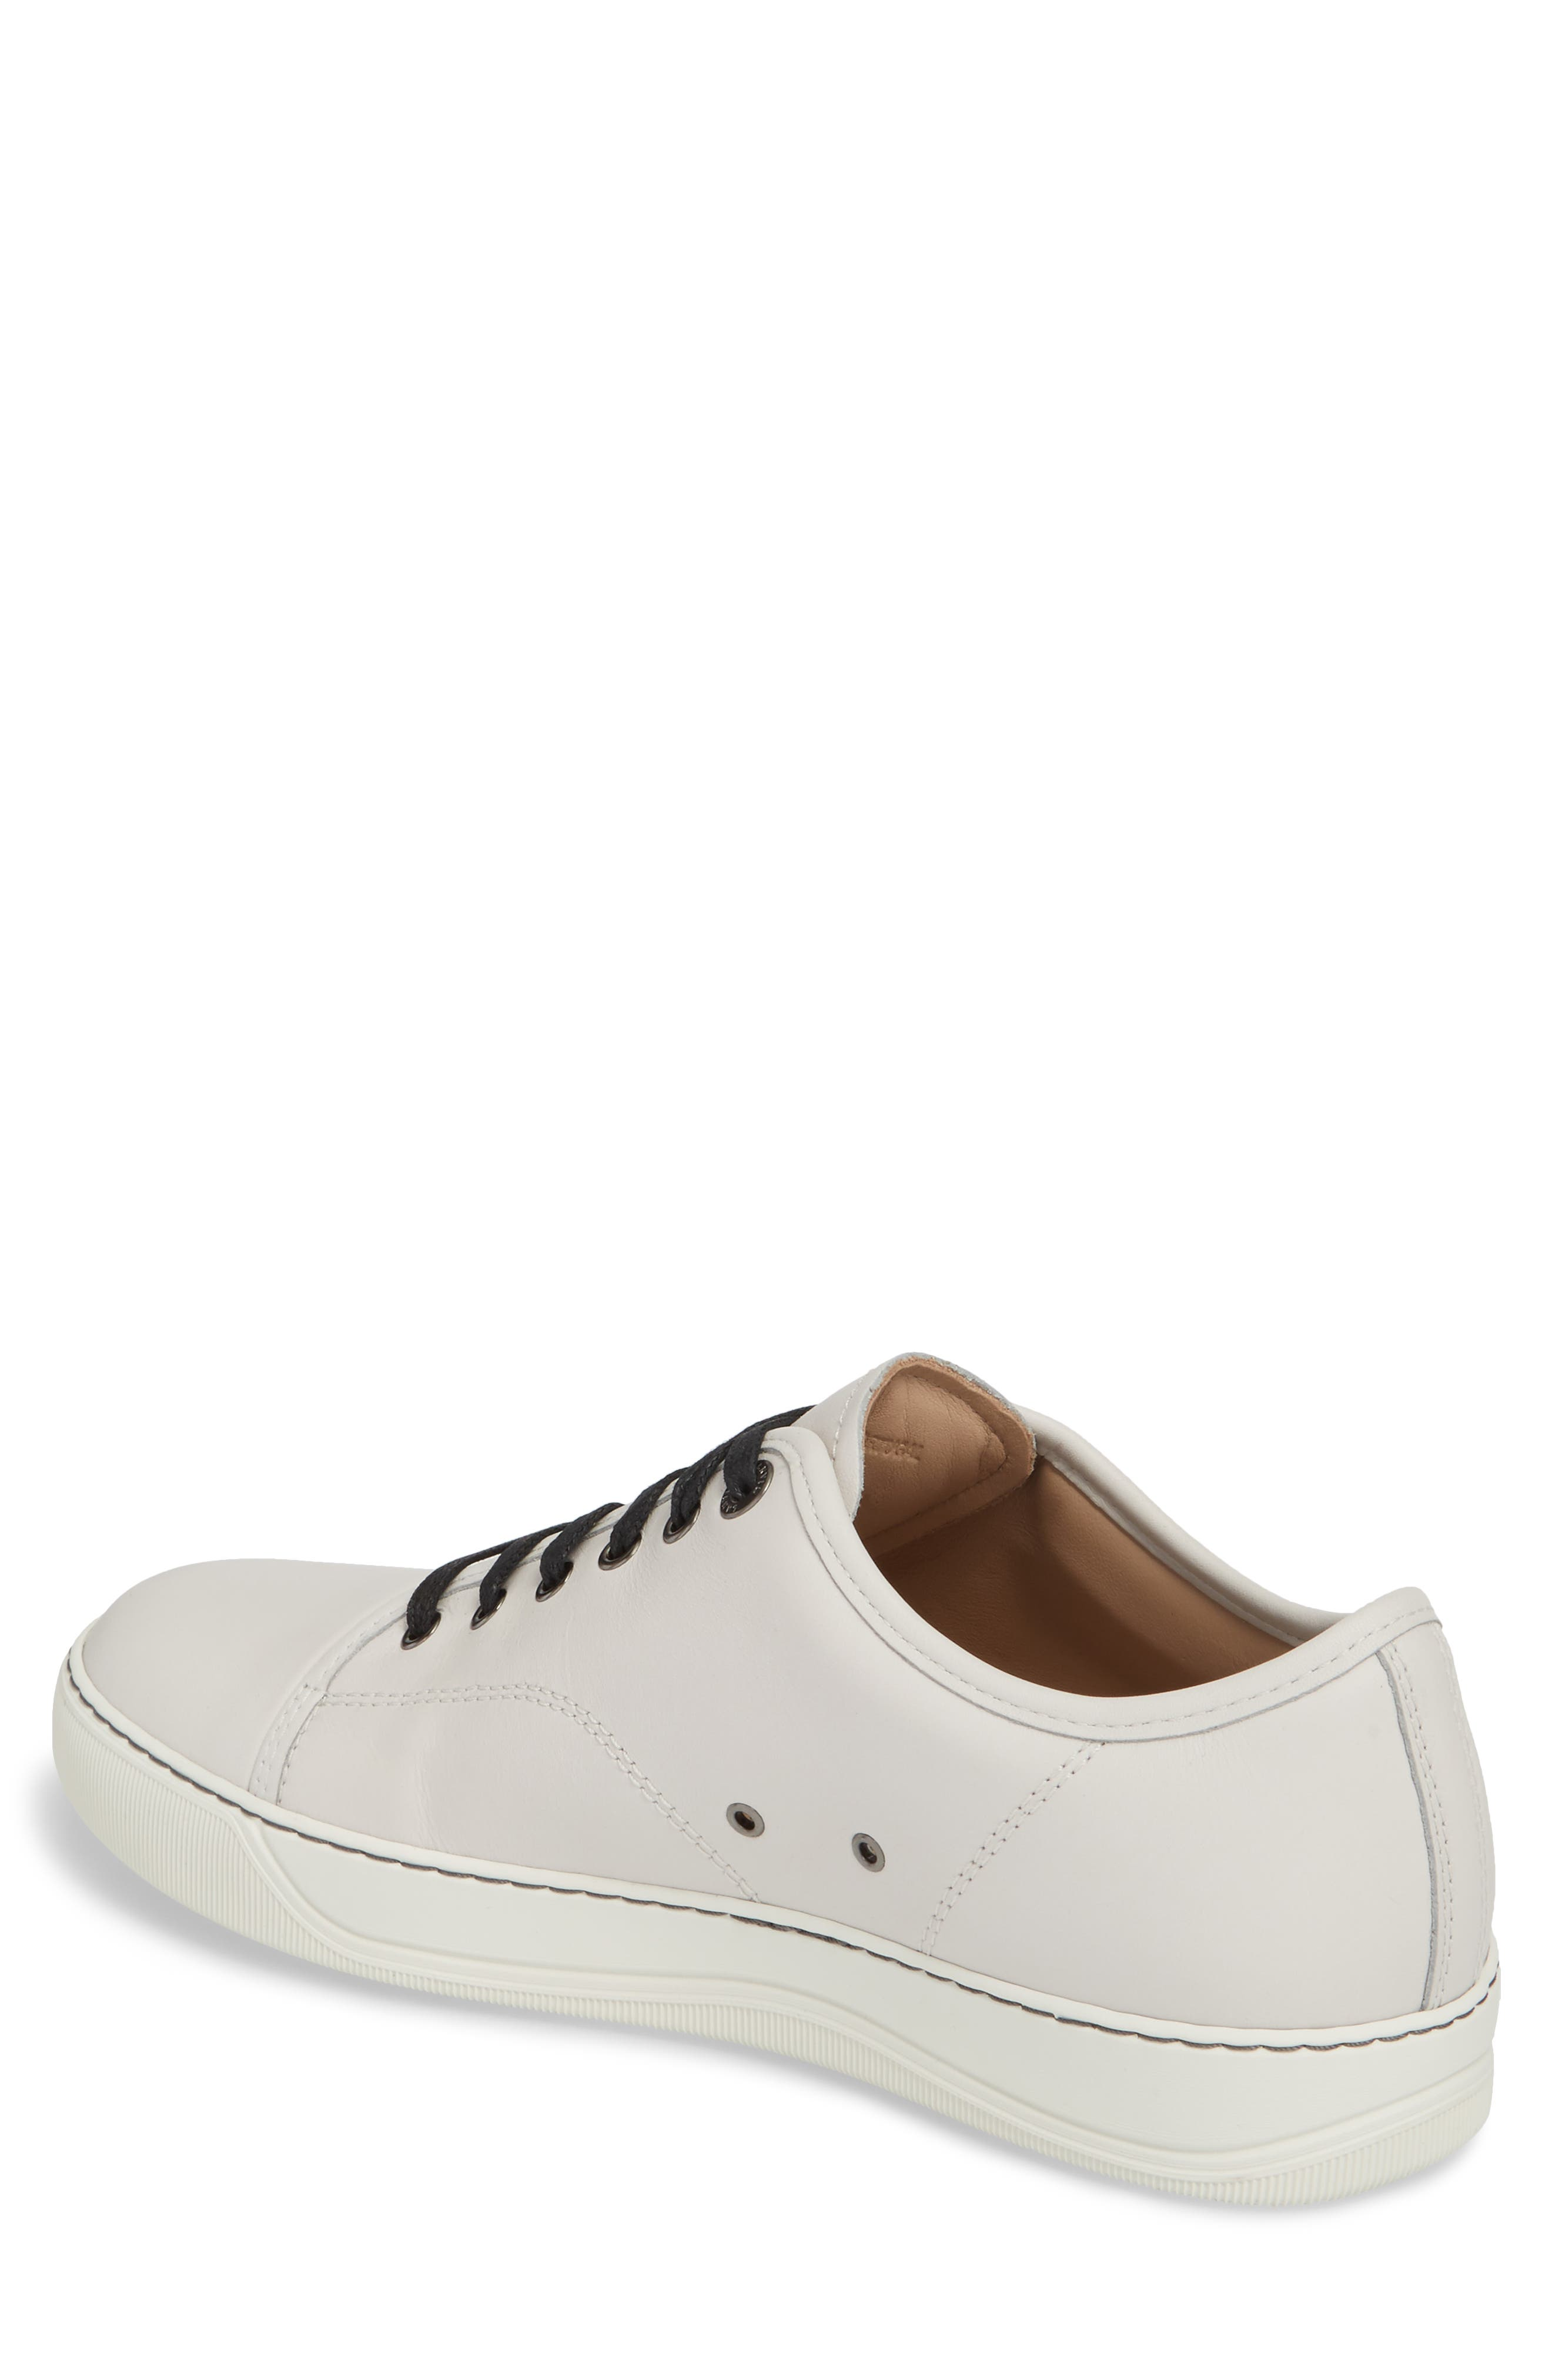 LANVIN,                             Low Top Sneaker,                             Alternate thumbnail 2, color,                             102